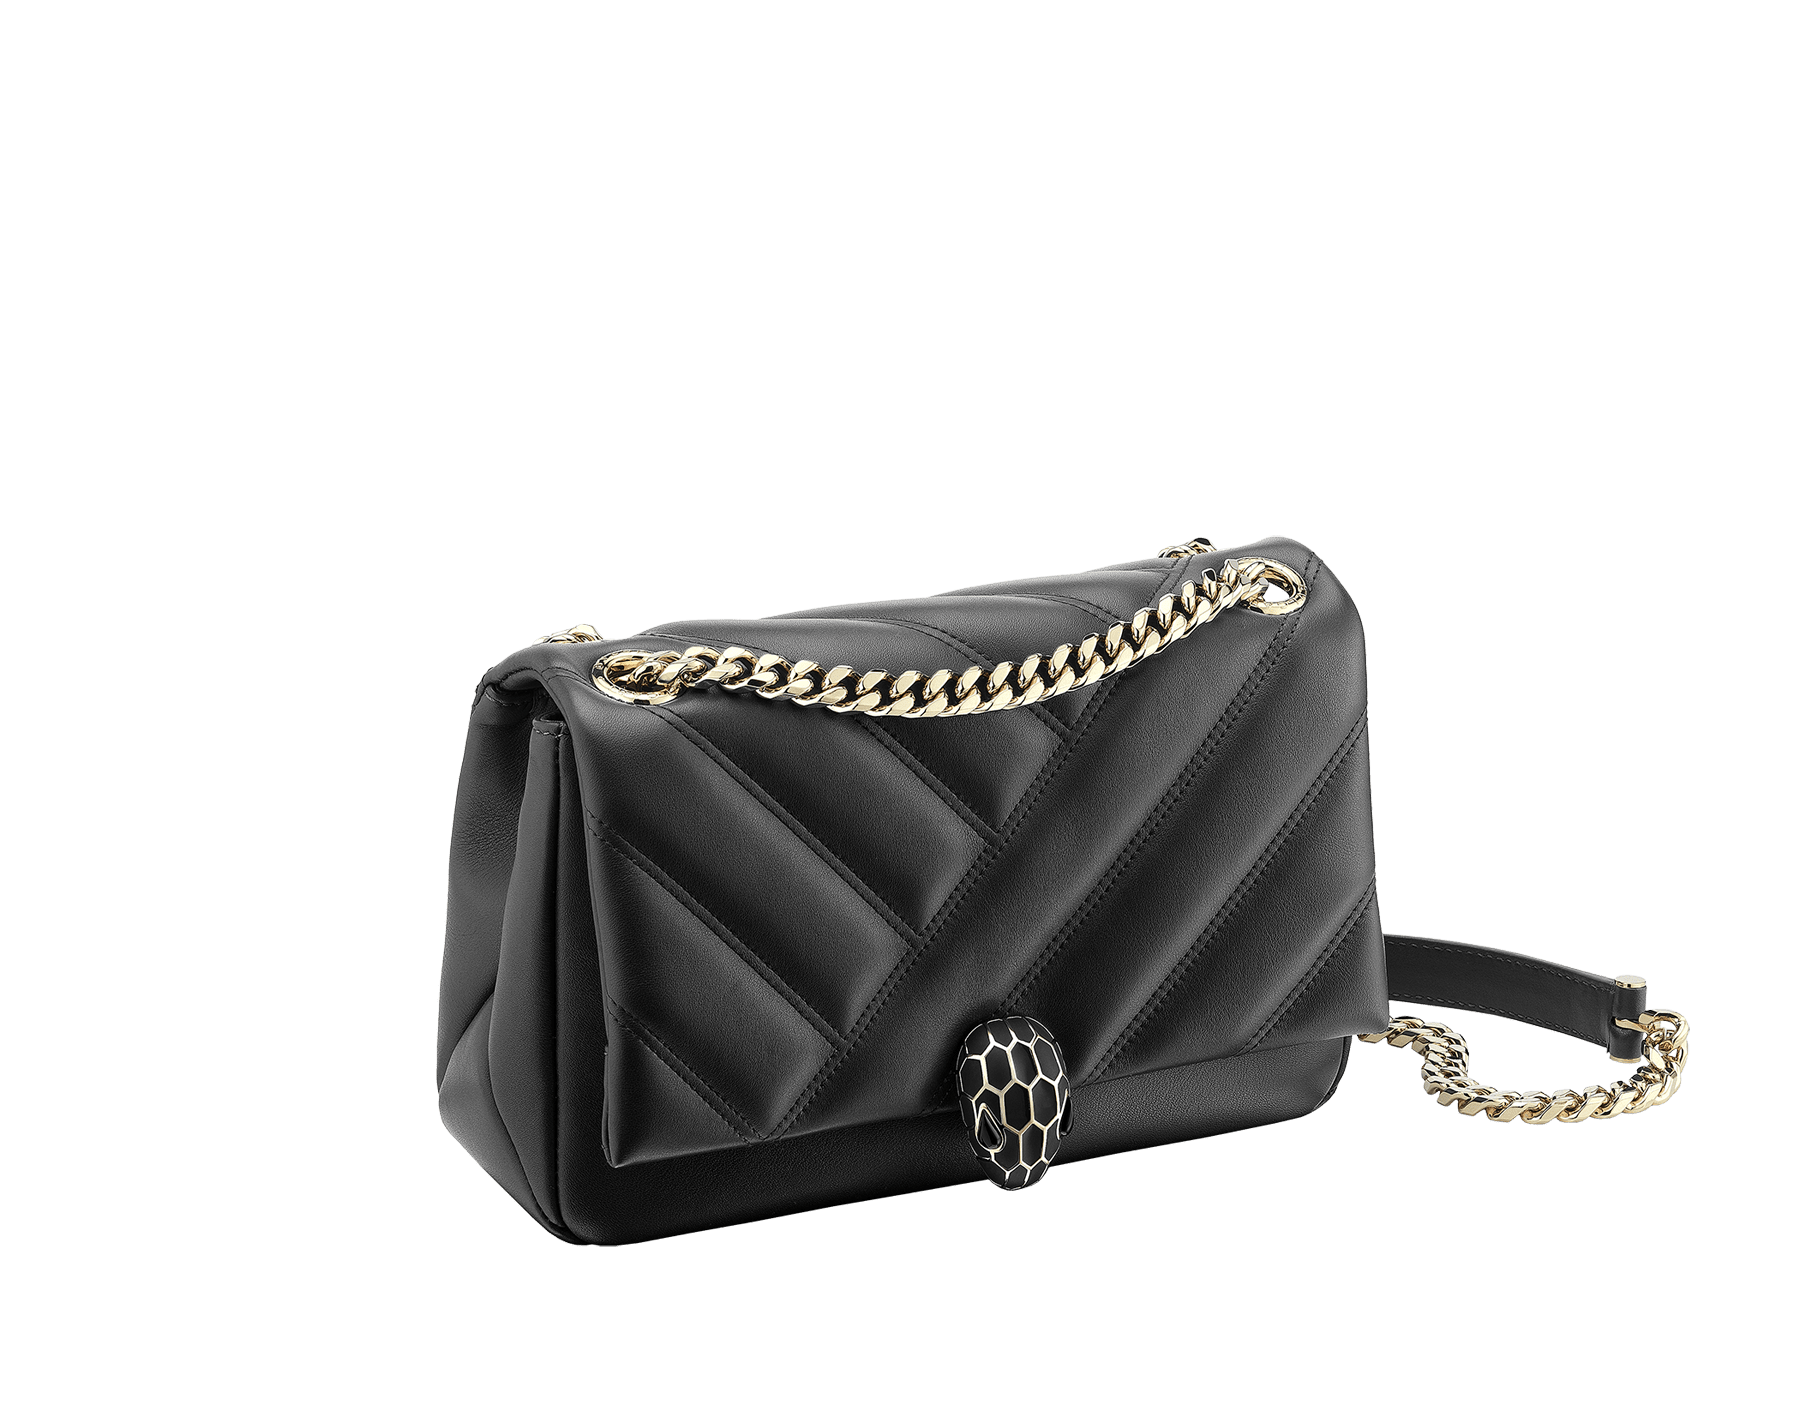 Serpenti Cabochon shoulder bag in soft matelassé black nappa leather with graphic motif and black calf leather. Snakehead closure in rose gold plated brass decorated with matte black and shiny black enamel, and black onyx eyes. 287987 image 2